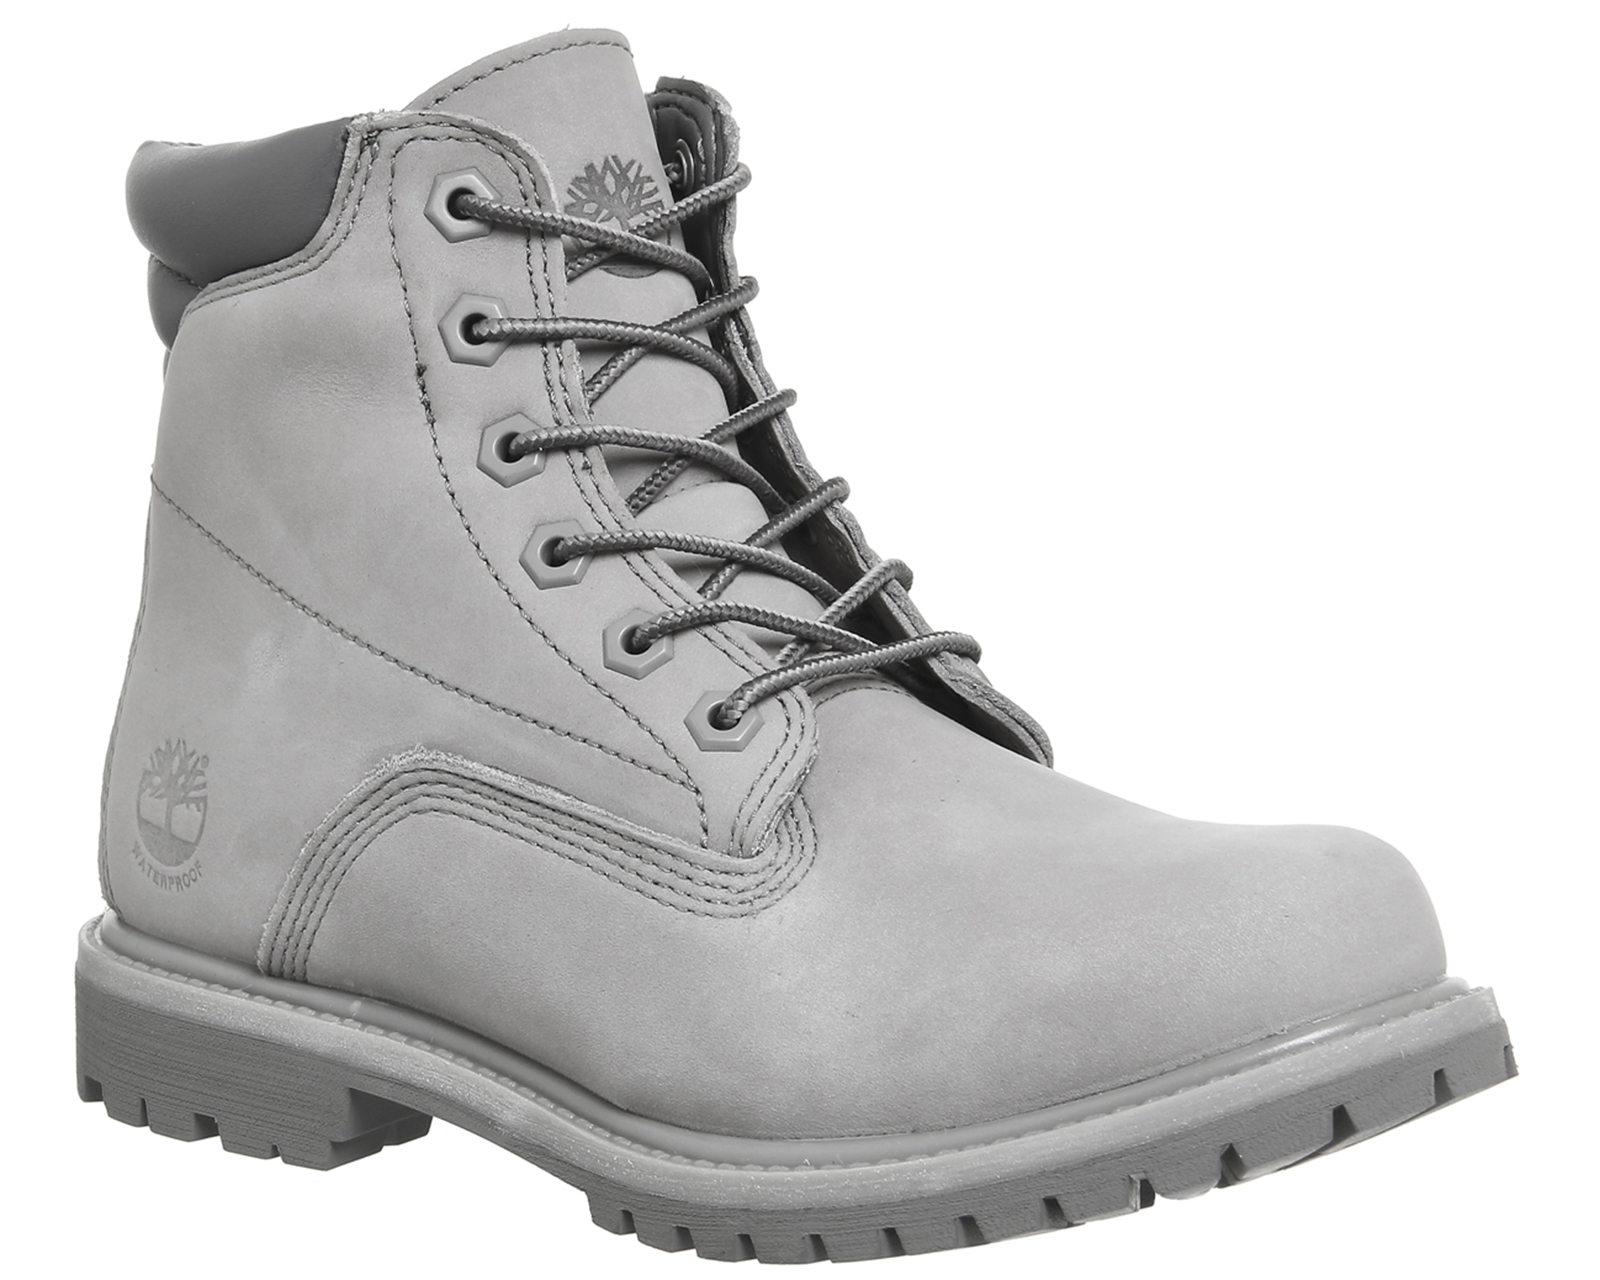 fed33204f39 Womens Timberland Grey Nubuck Lace Up Ankle Boots Size UK 6 *Ex ...